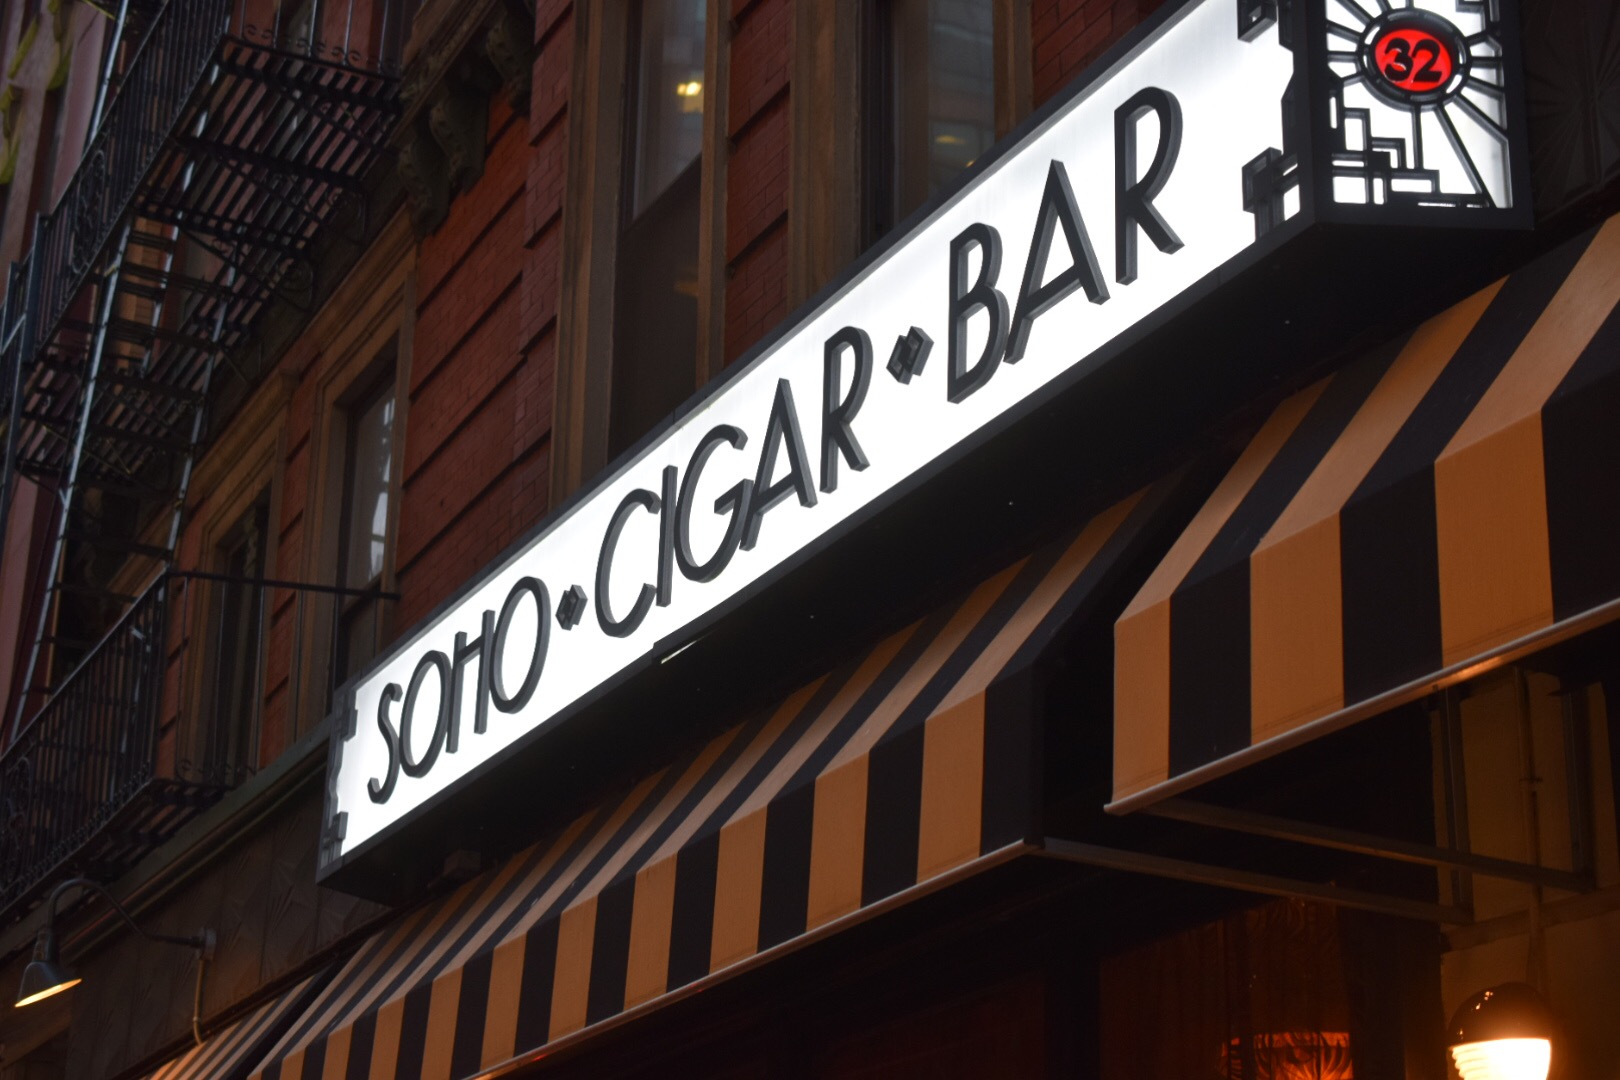 Soho Cigar Bar – New York's Oldest Whisky and Cigar Bar